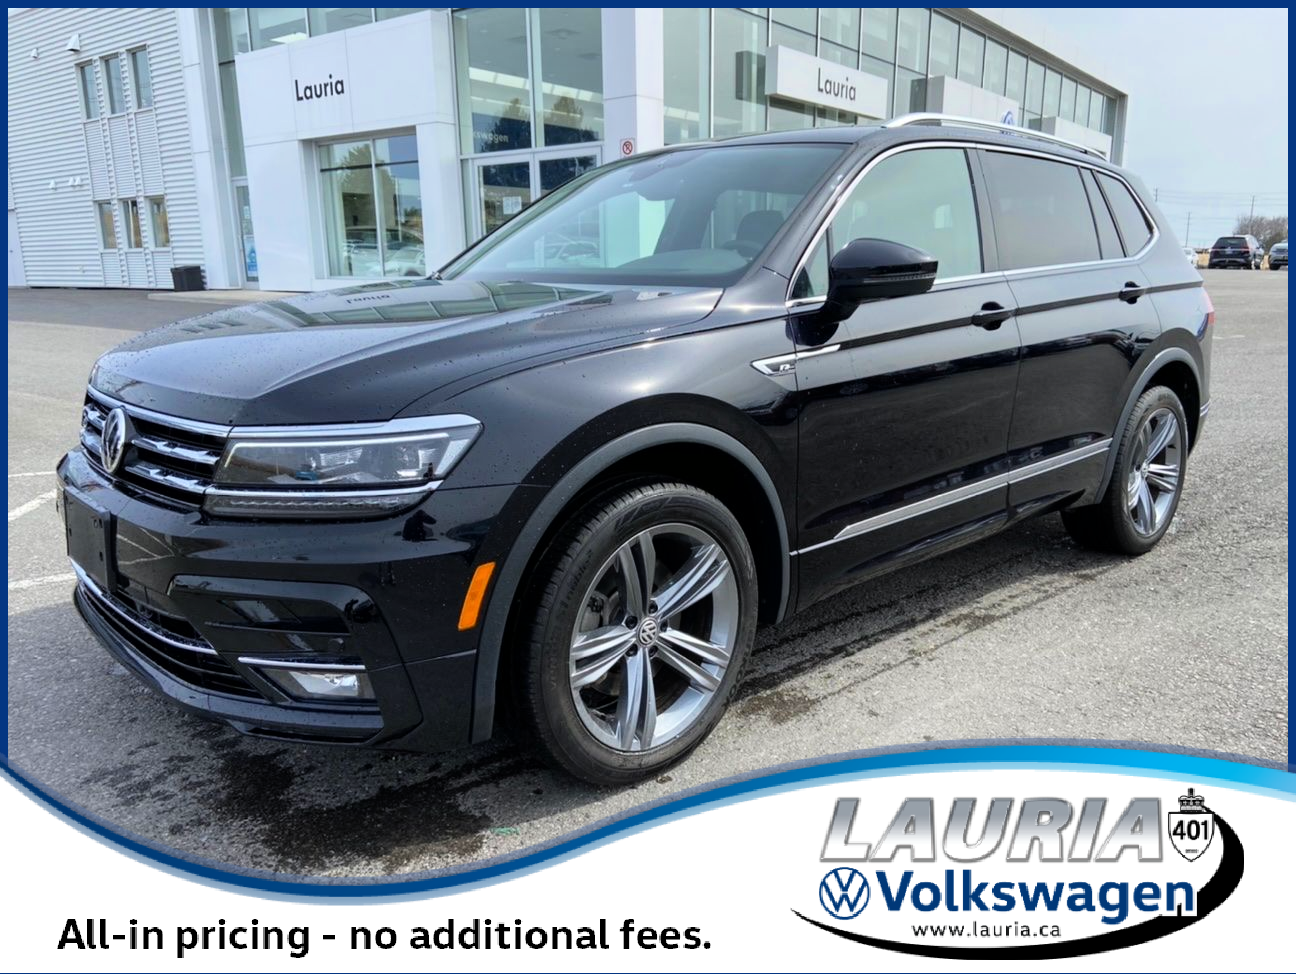 used 2020 Volkswagen Tiguan car, priced at $40,888